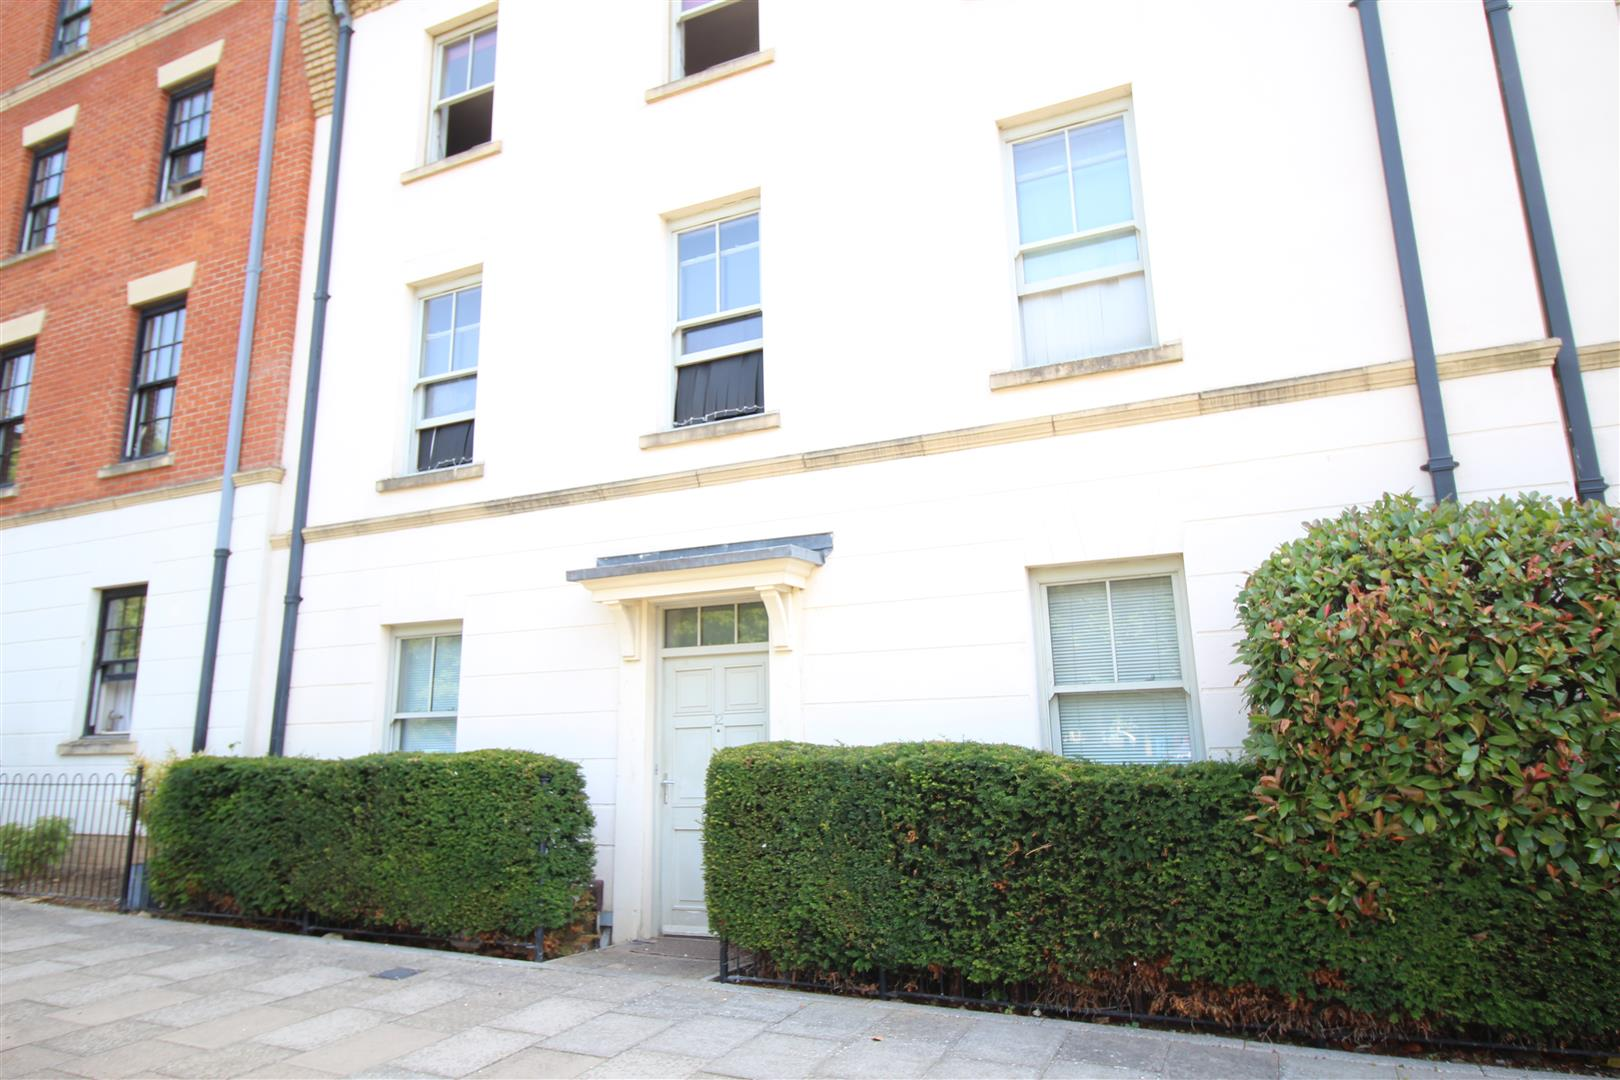 FANTASTIC FIRST TIME BUYER OR INVESTOR OPPORTUNITY!<br/><br/>Stratfords are pleased to present this fantastic 2 bedroom ground floor apartment situated in the sought after area of UPTON. Originally built by Paul Newman Homes the property boasts wonderful